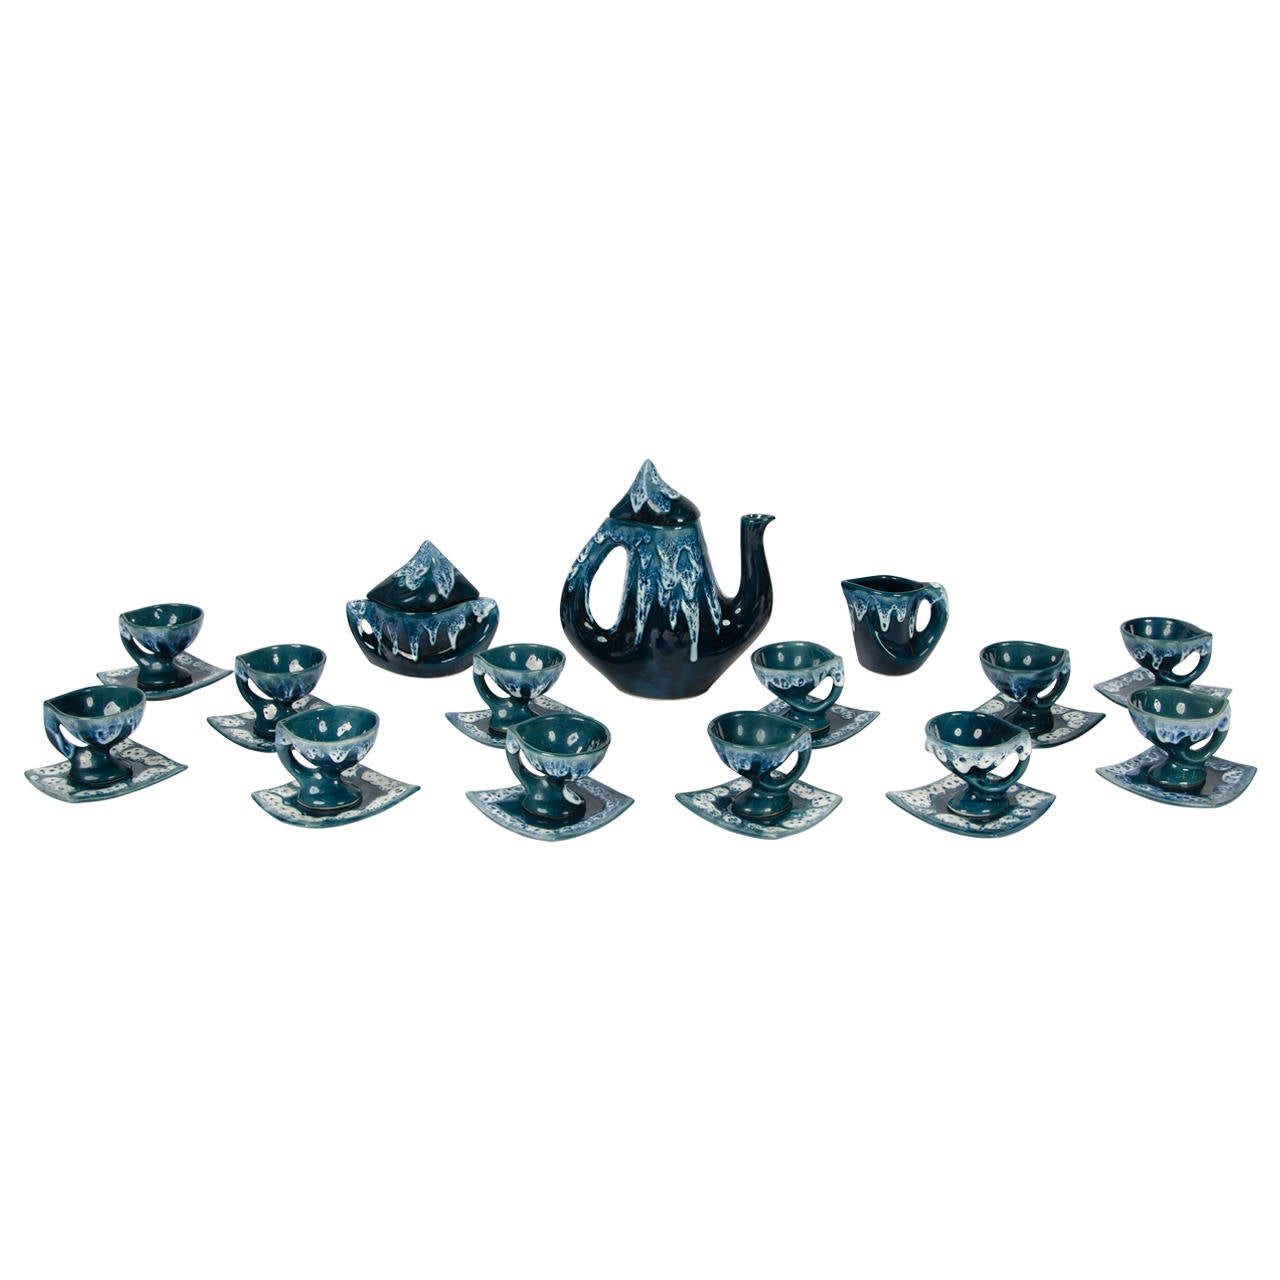 Rare 1960s Vintage Vallauris Dark Blue Pottery Ceramic 15 Pieces Coffee Set